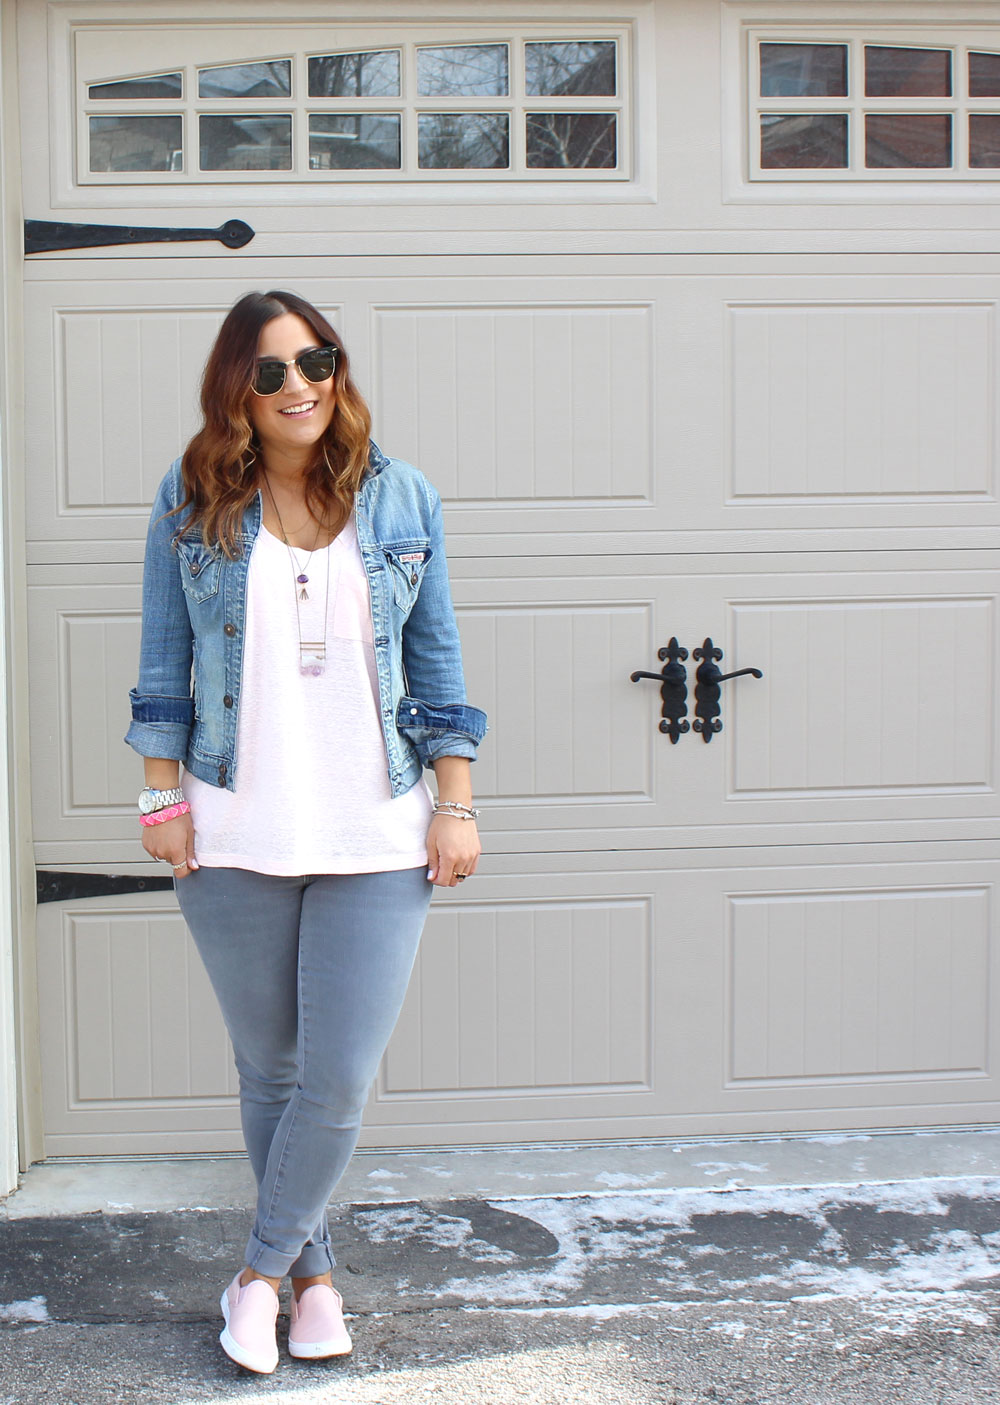 How to wear a Canadian Tuxedo and look Stylish